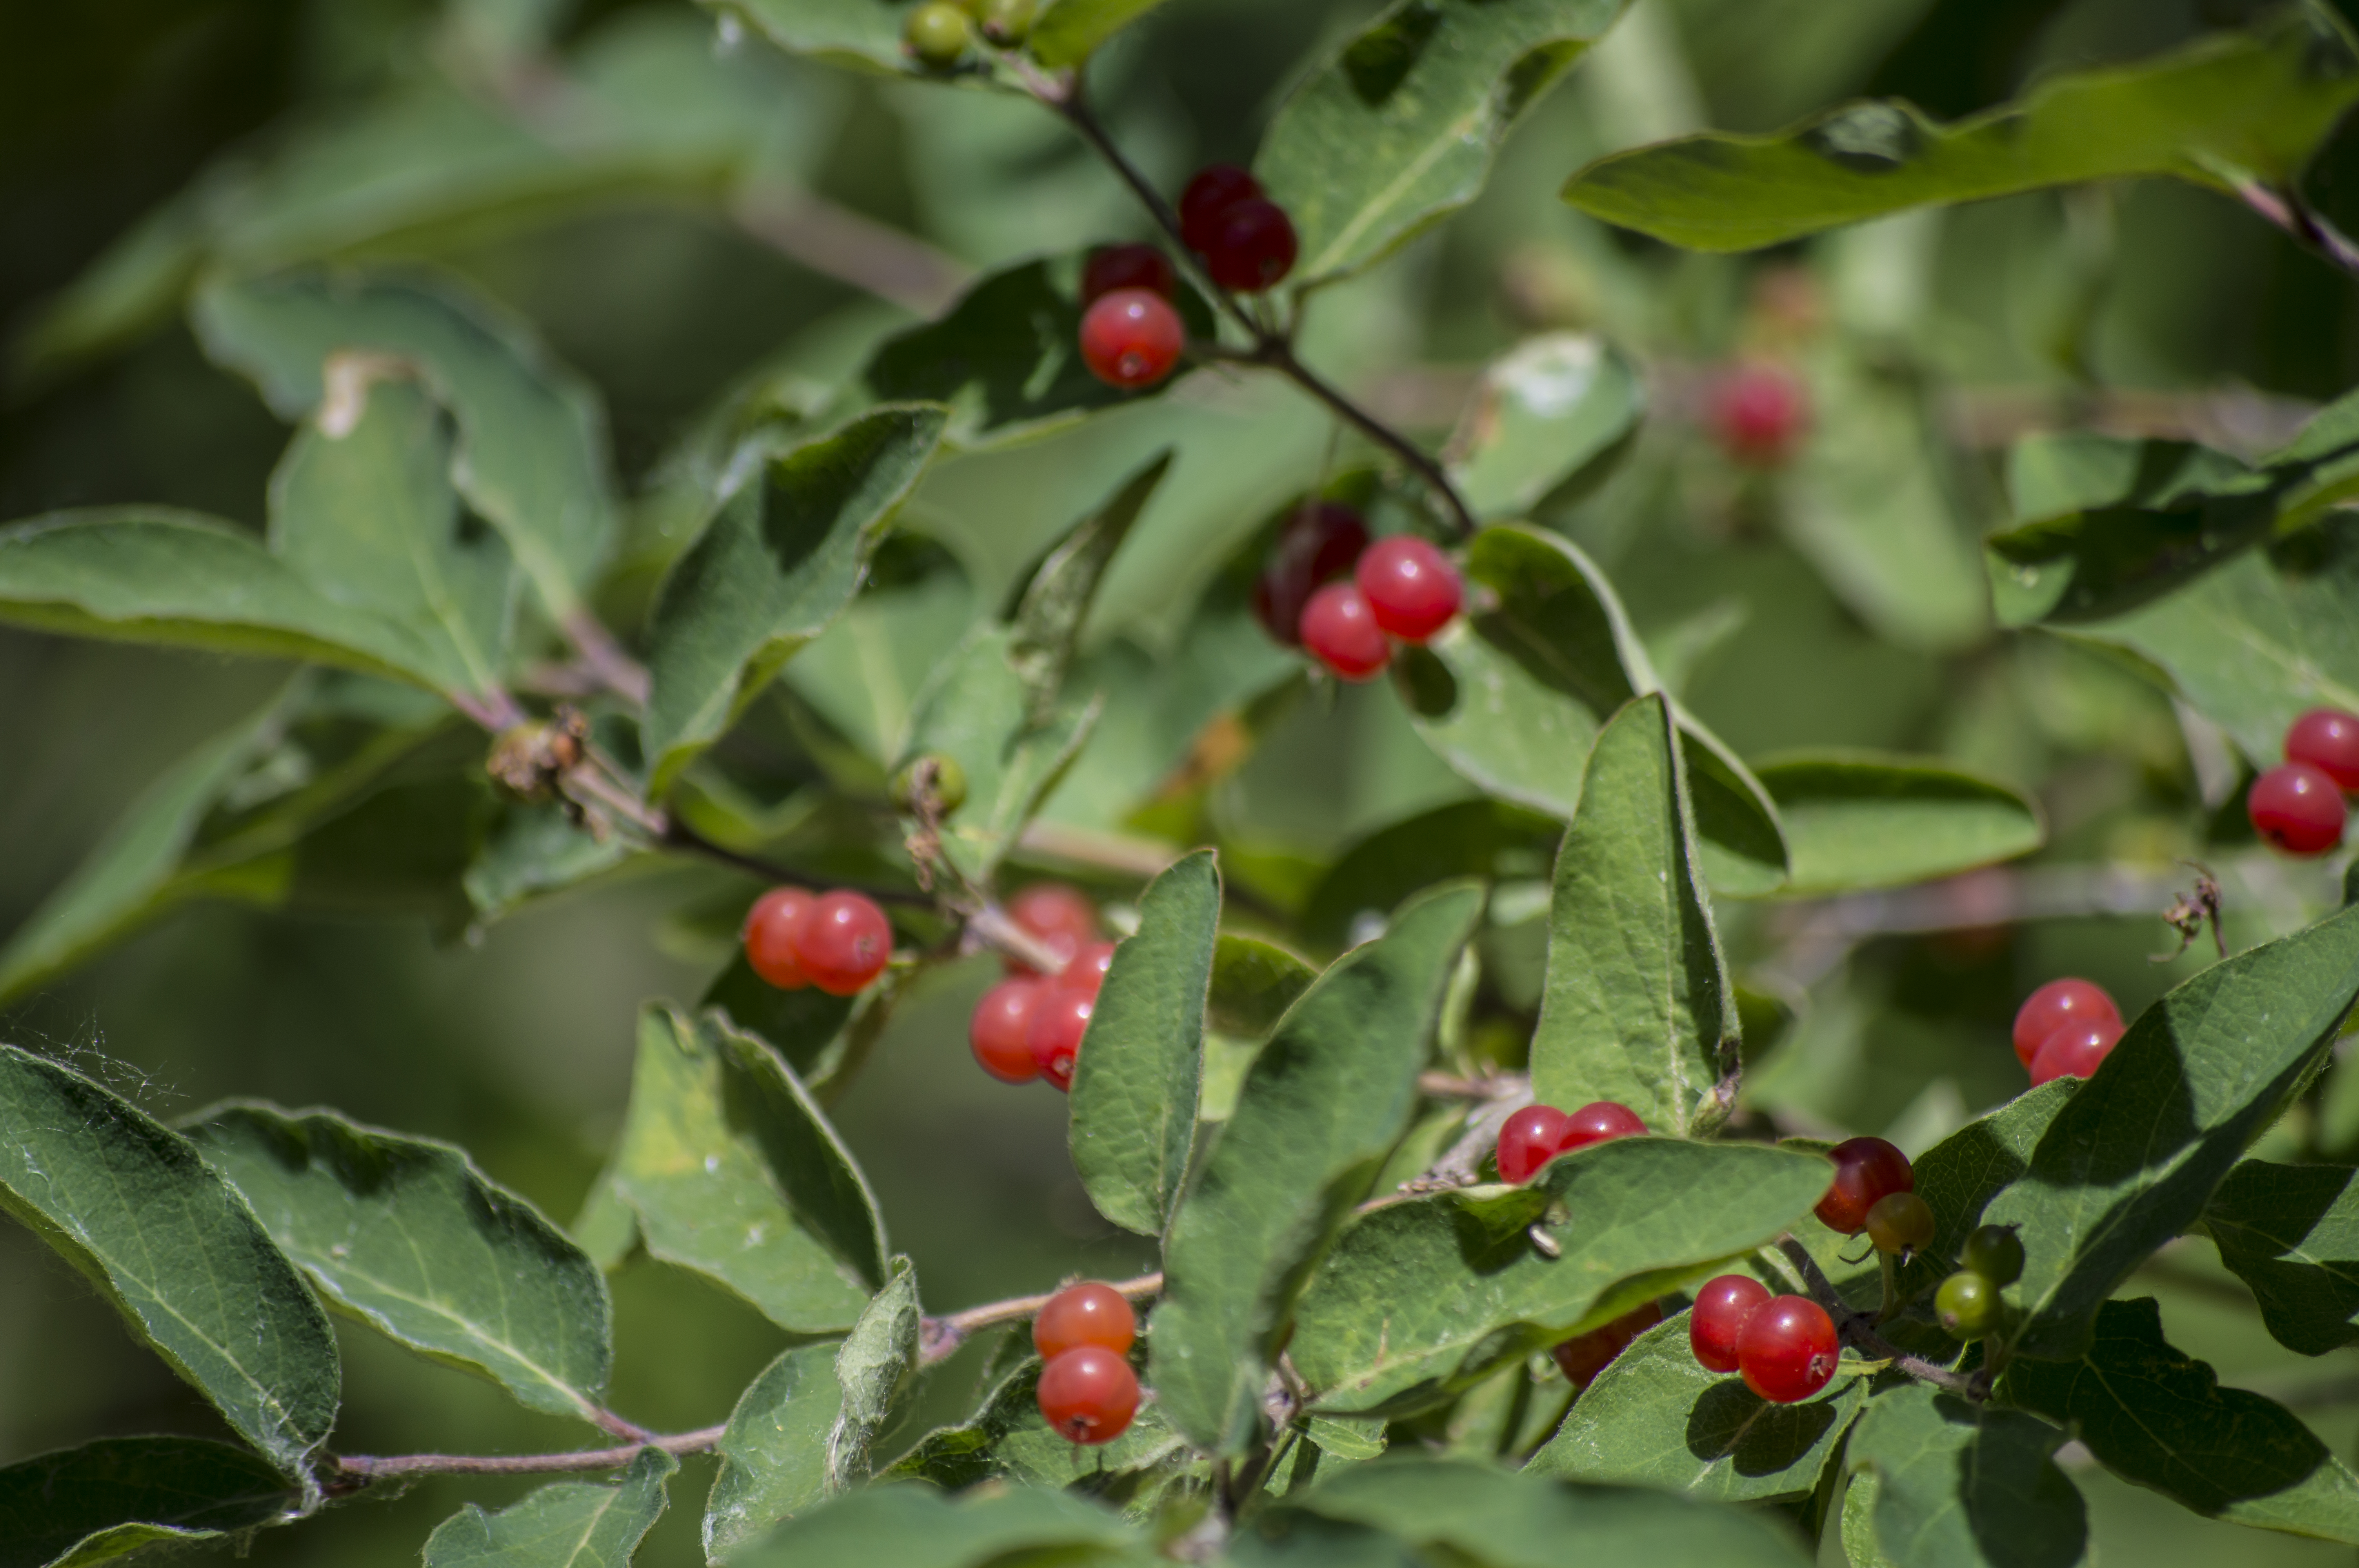 Berries from A Bush